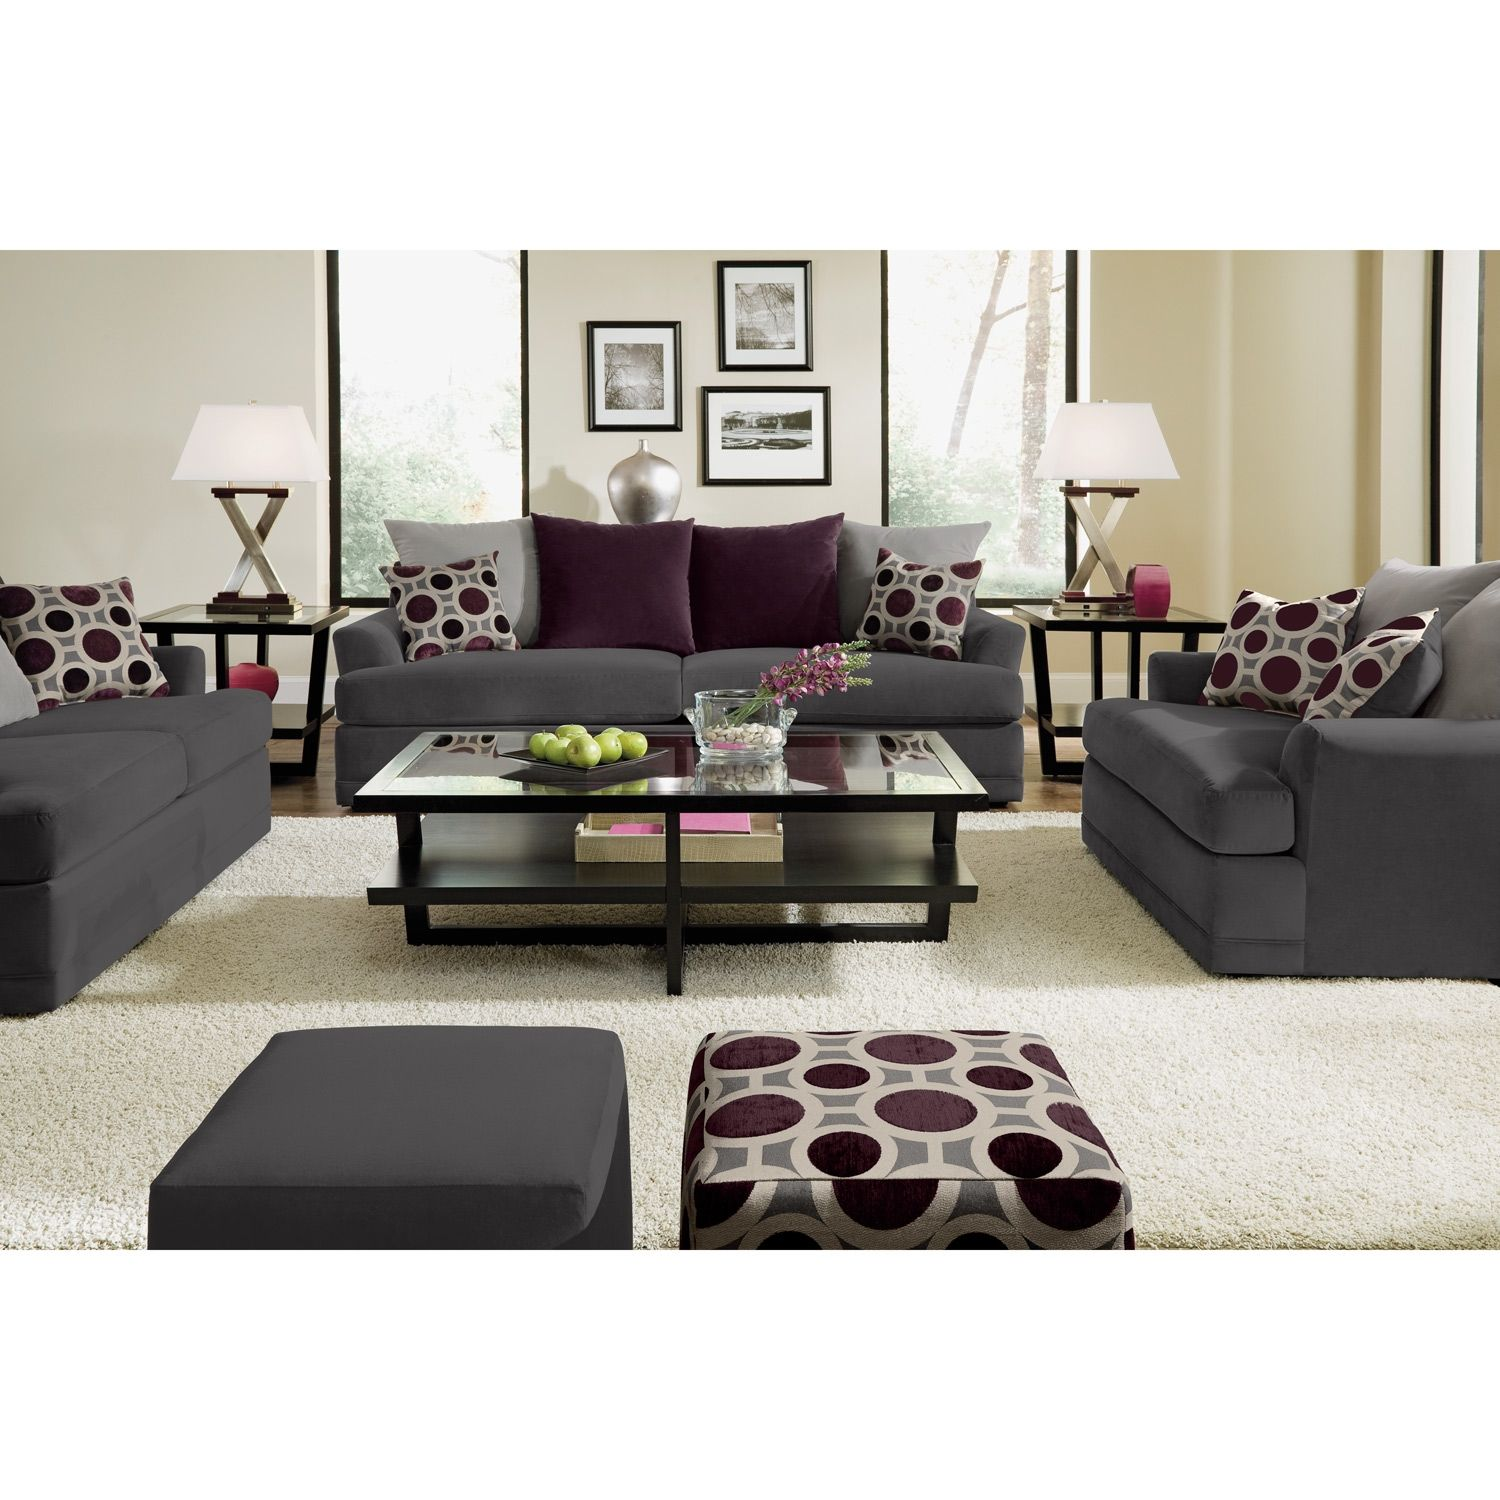 Living Room Sets Value City Furniture radiance upholstery sofa - value city furniture | living room